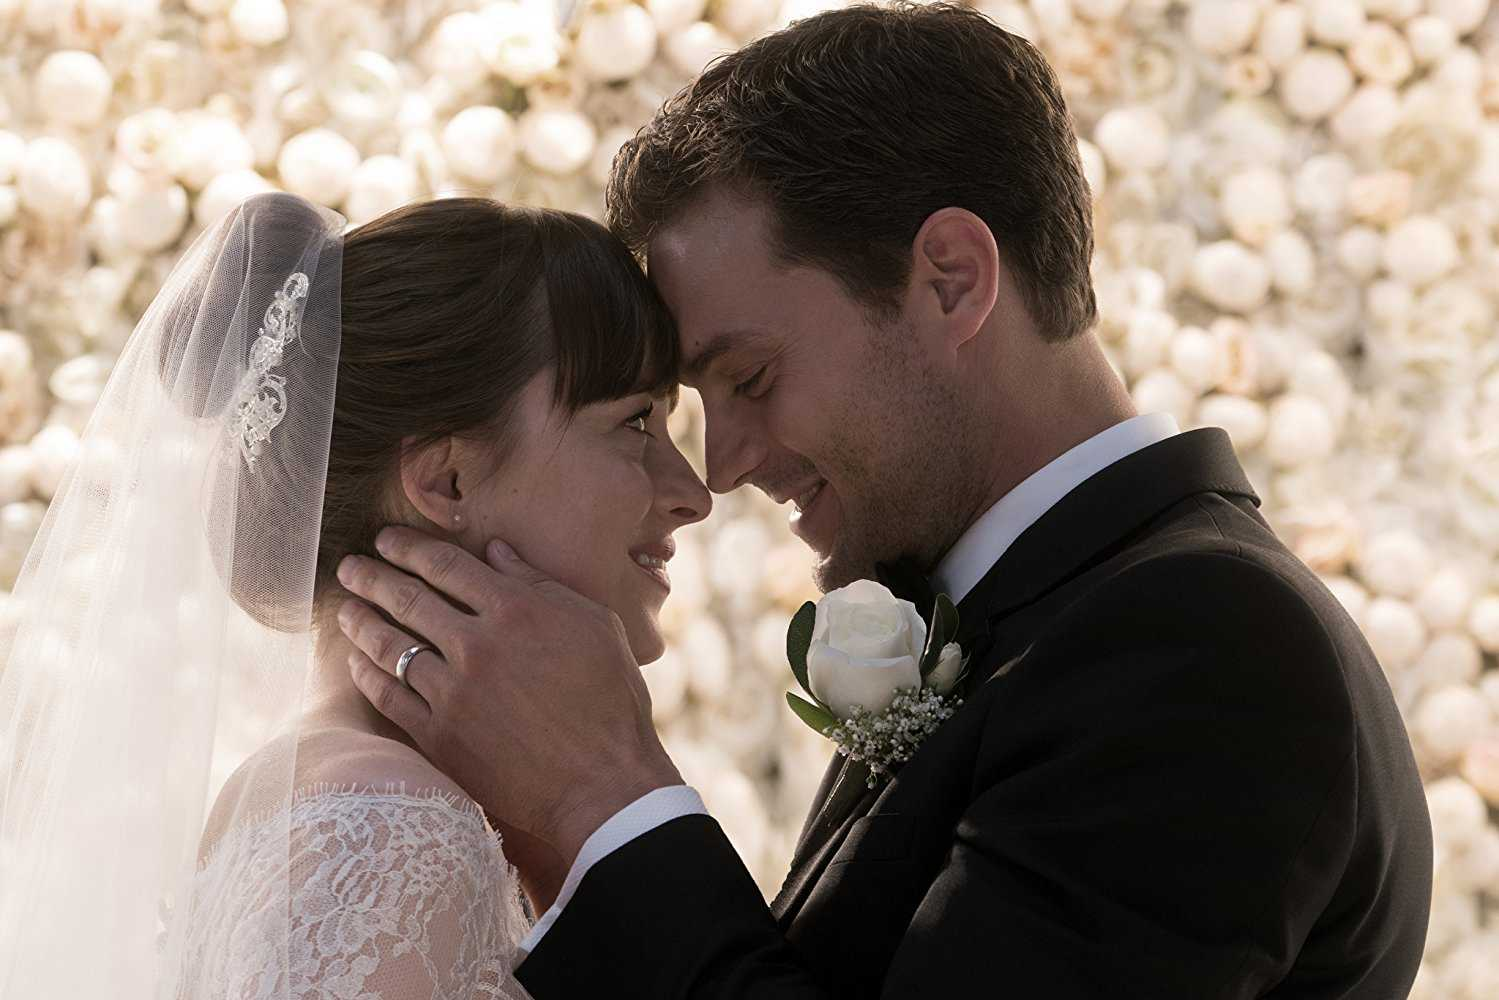 "UNIVERSAL PICTURES Topping the weekend box office, ""Fifty Shades Freed"" earned $38.8 million, a drop from previous entries in the franchise. The last film in the trilogy, the film has received lackluster reviews from critics with just an 11 percent on Rotten Tomatoes."